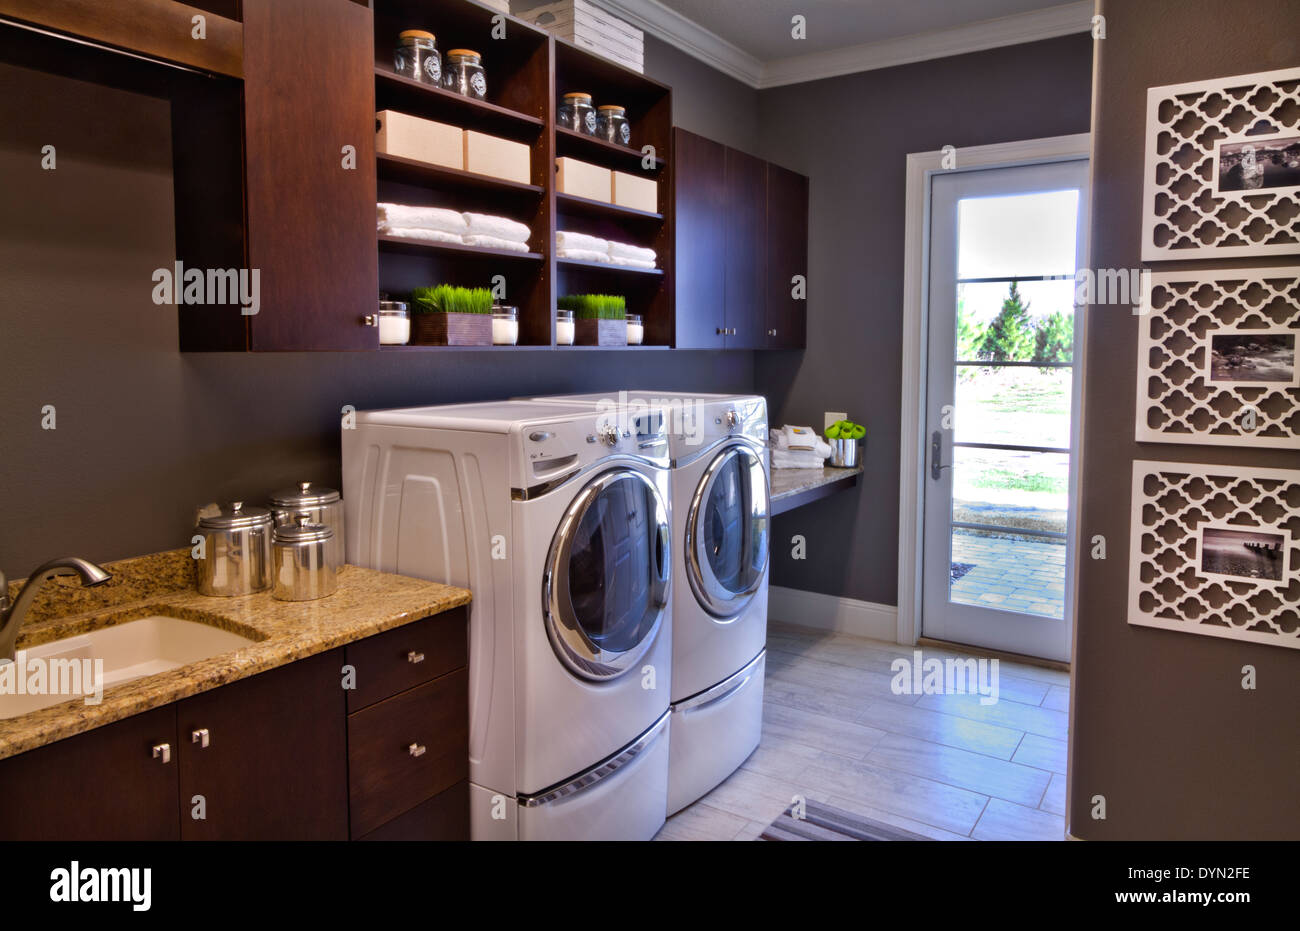 luxury laundry room interior luxury laundry room in expensive home windermere florida stock